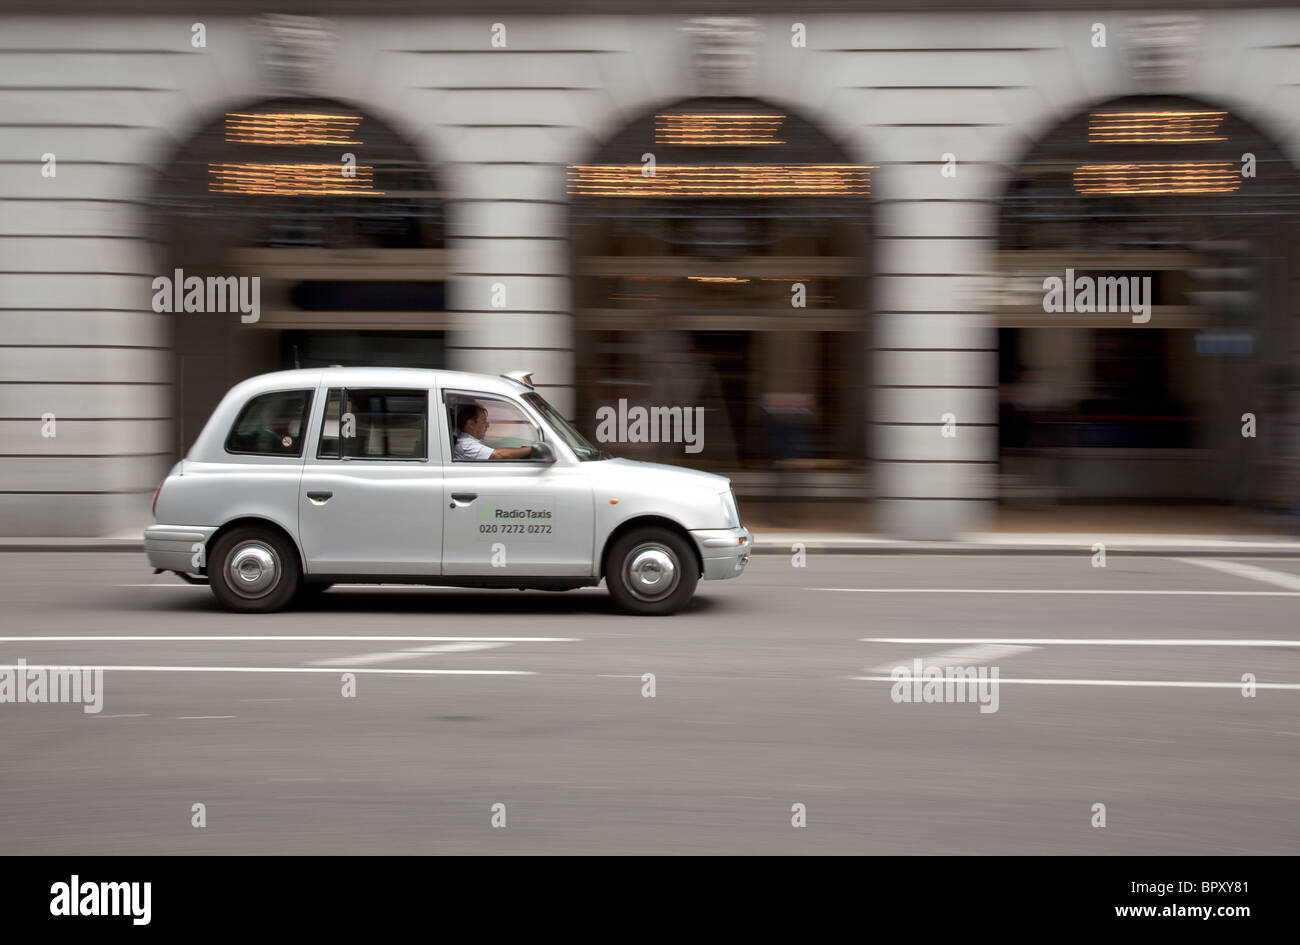 Taxi passing The Ritz Hotel, London - Stock Image